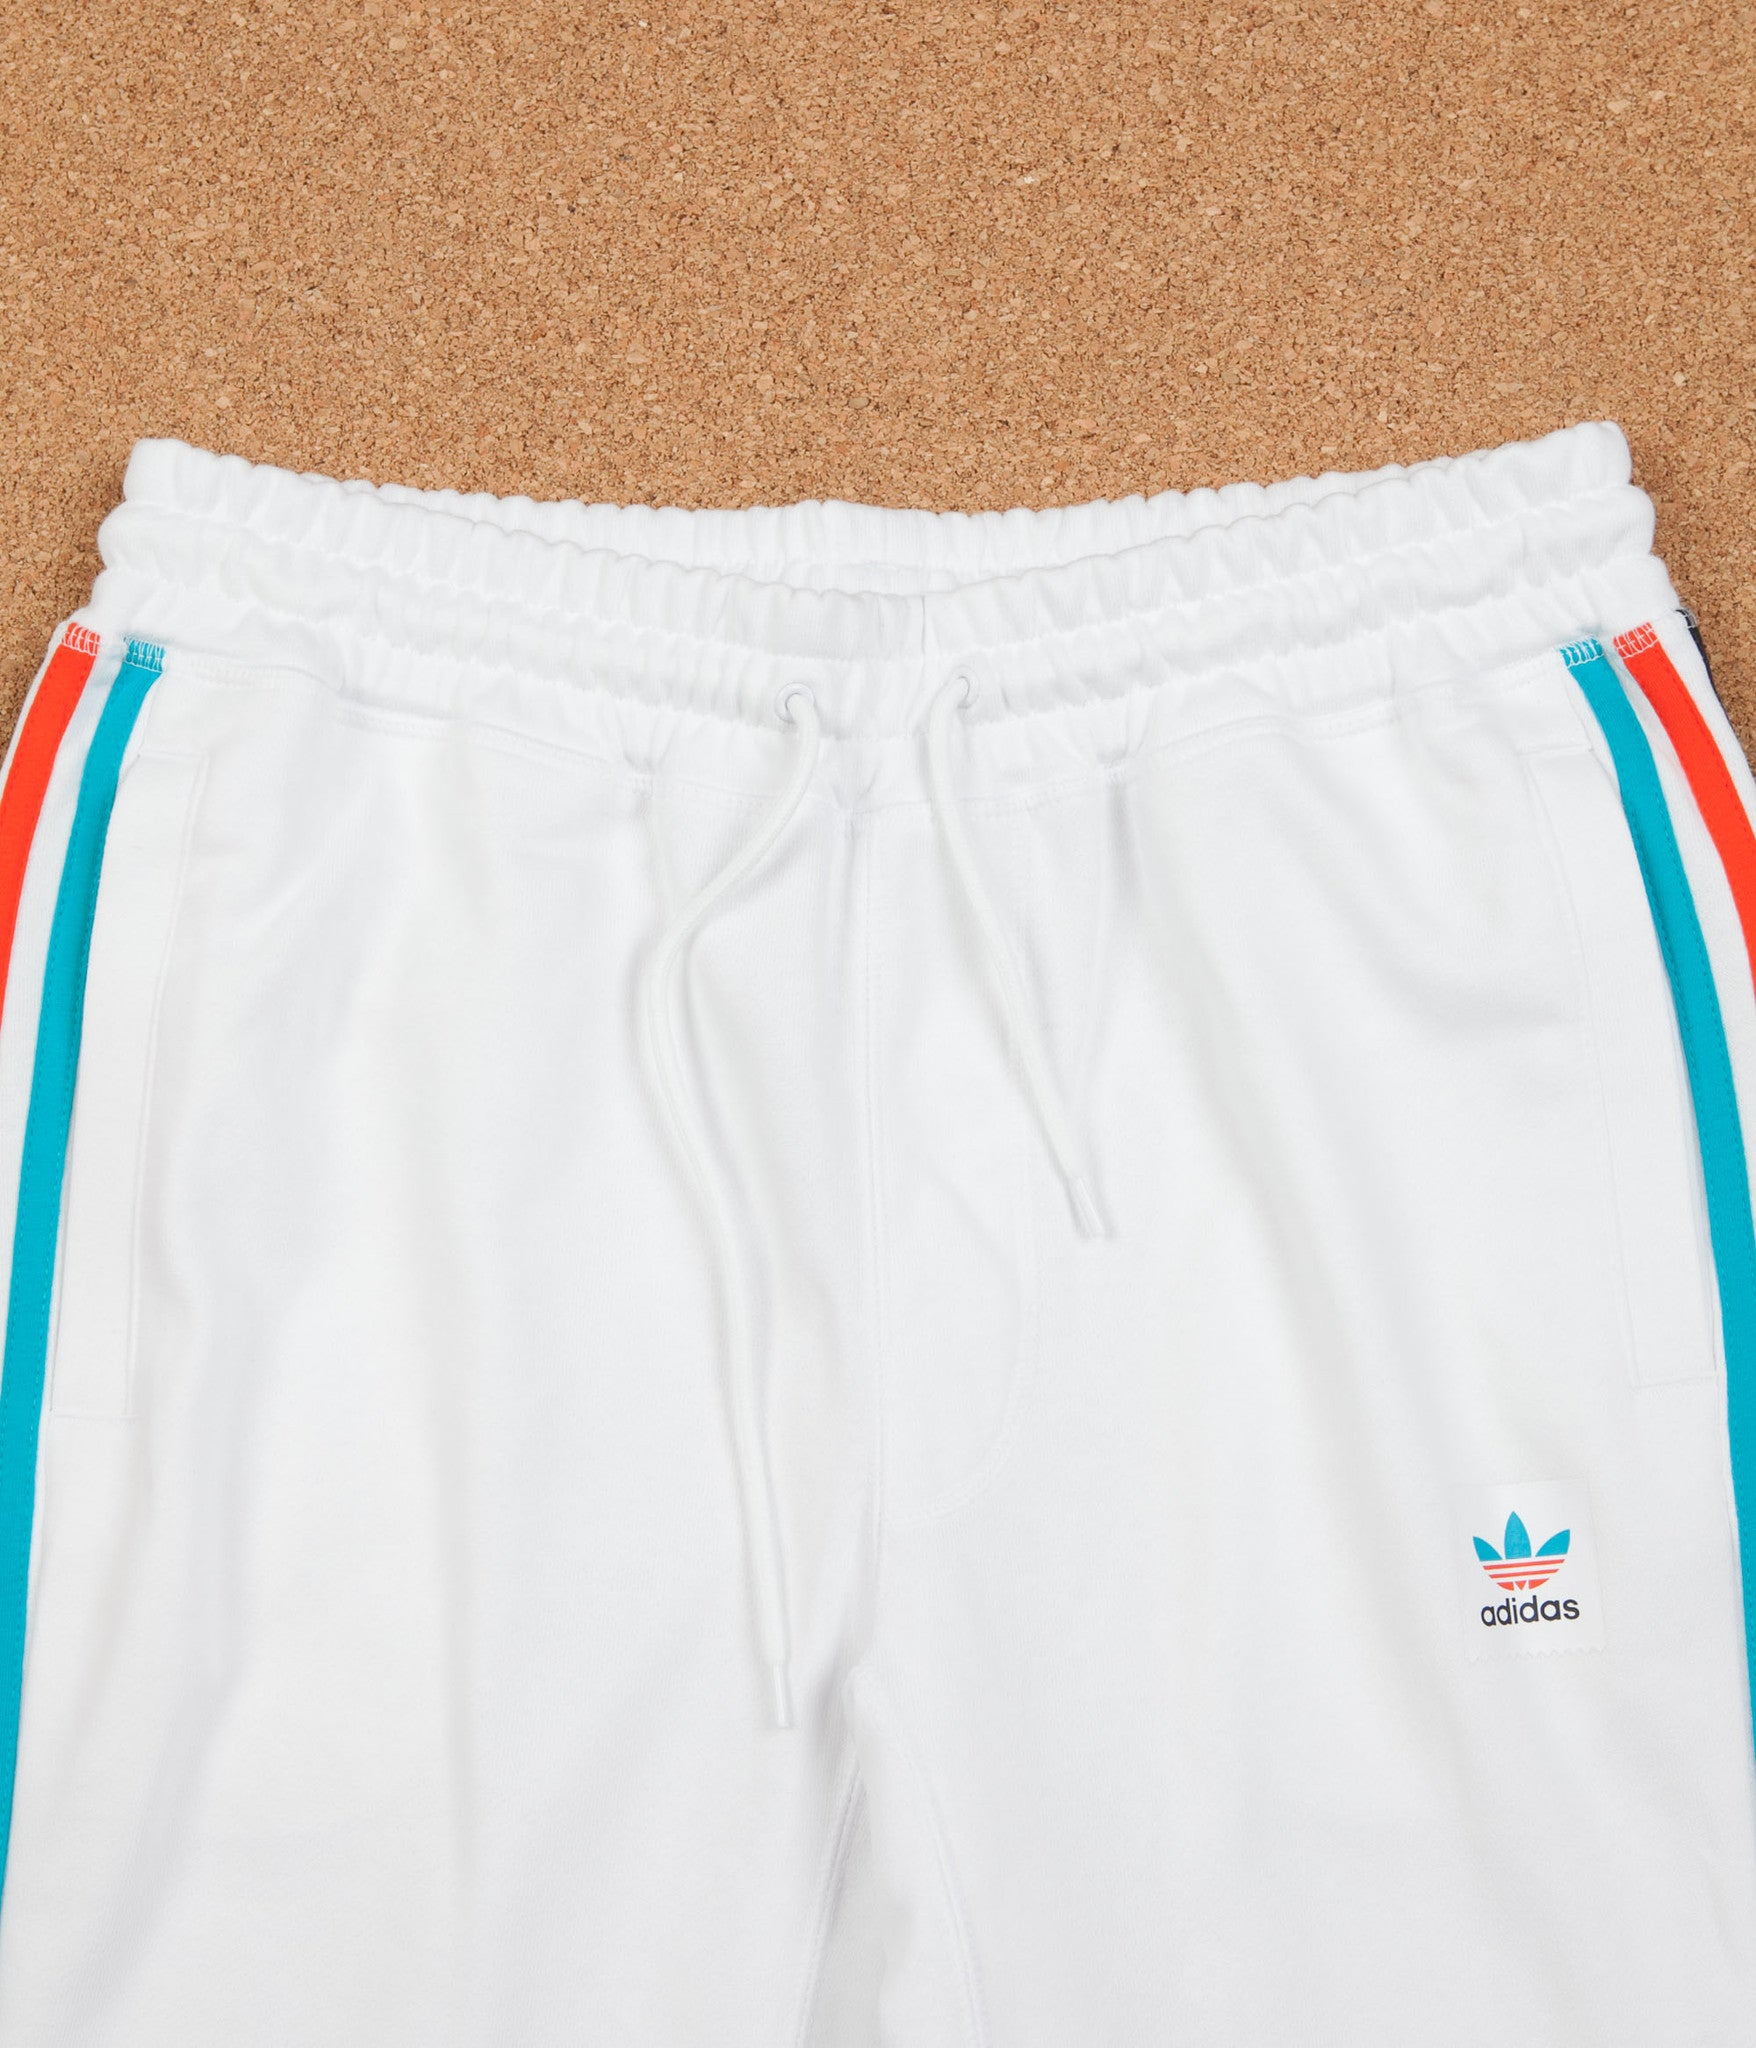 Adidas Blackbird Sweatpants - White / Energy Blue / Energy / Black